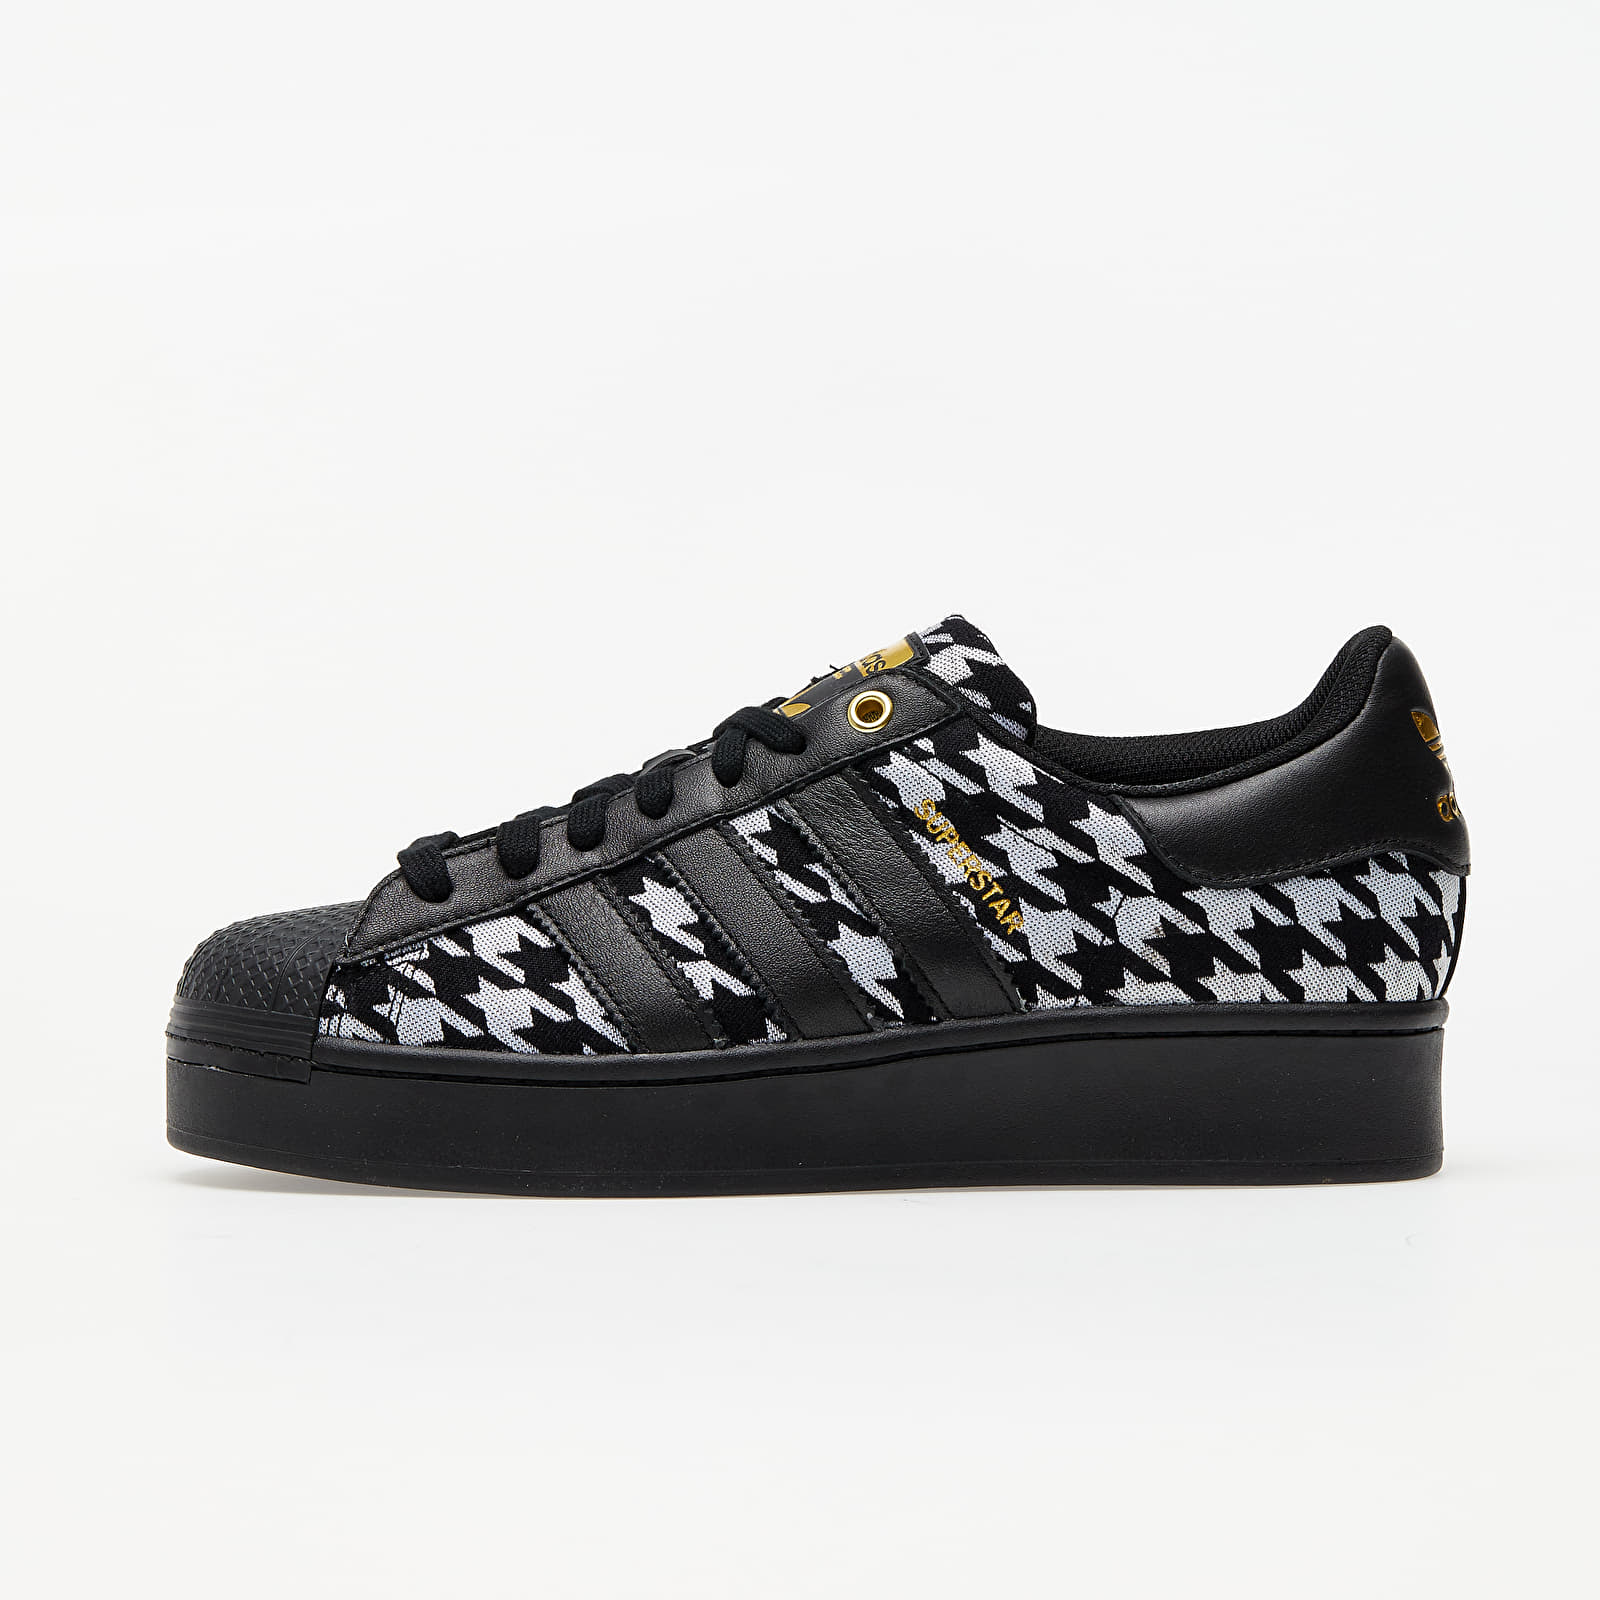 Women's shoes adidas Superstar Bold W Core Black/ Core Black/ Ftw White